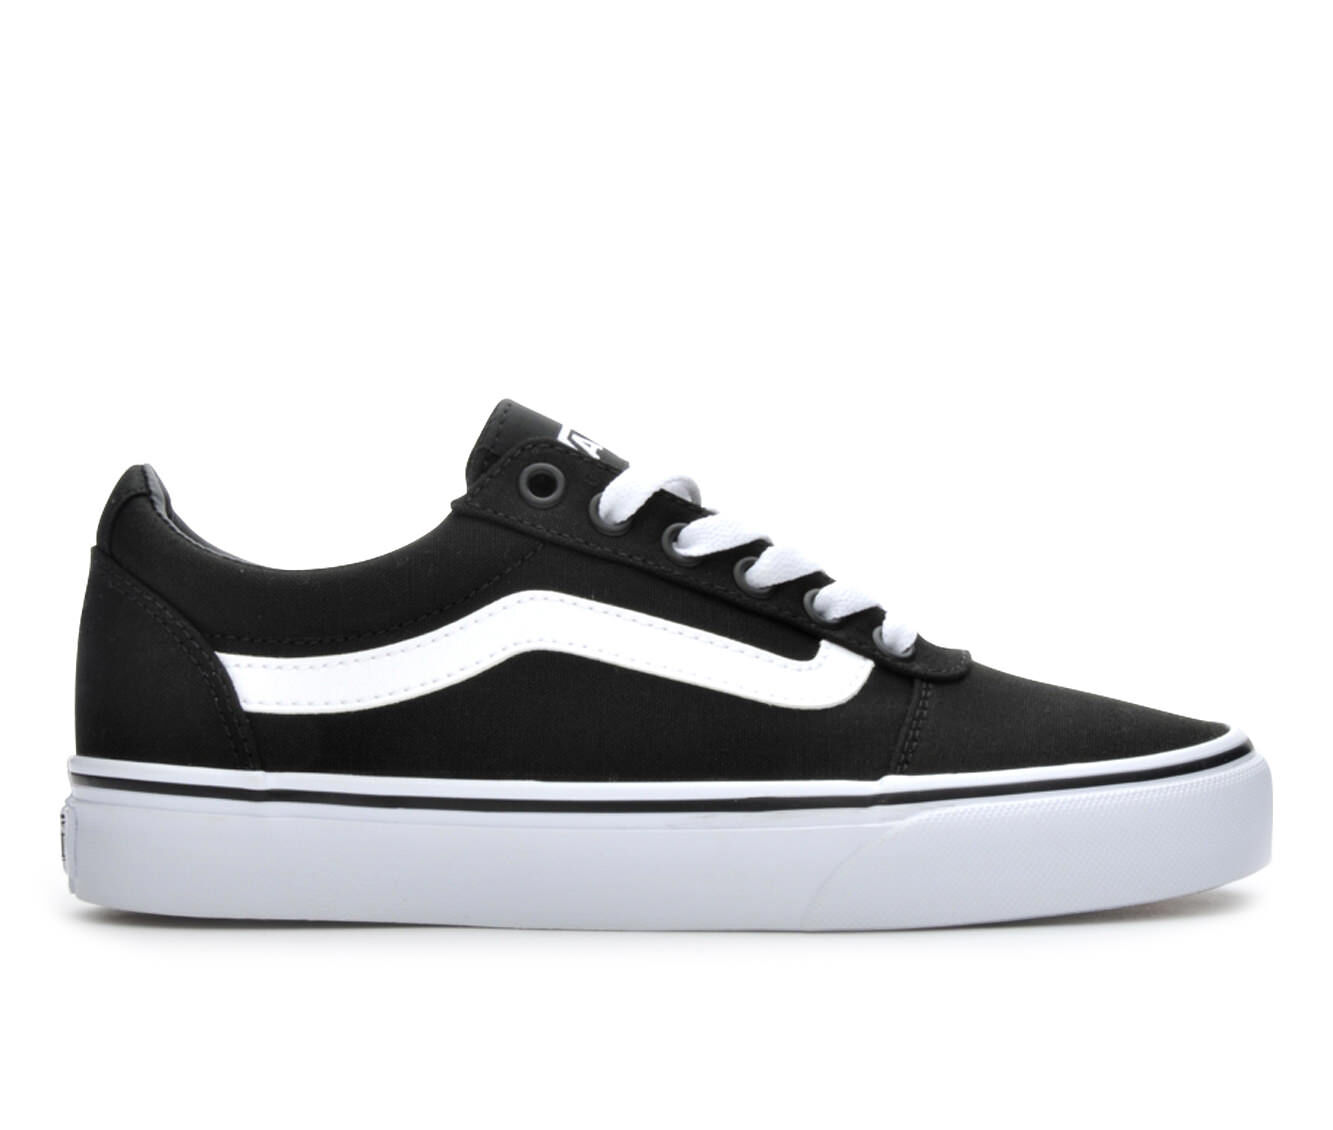 Women's Vans Ward Skate Shoes Black/White